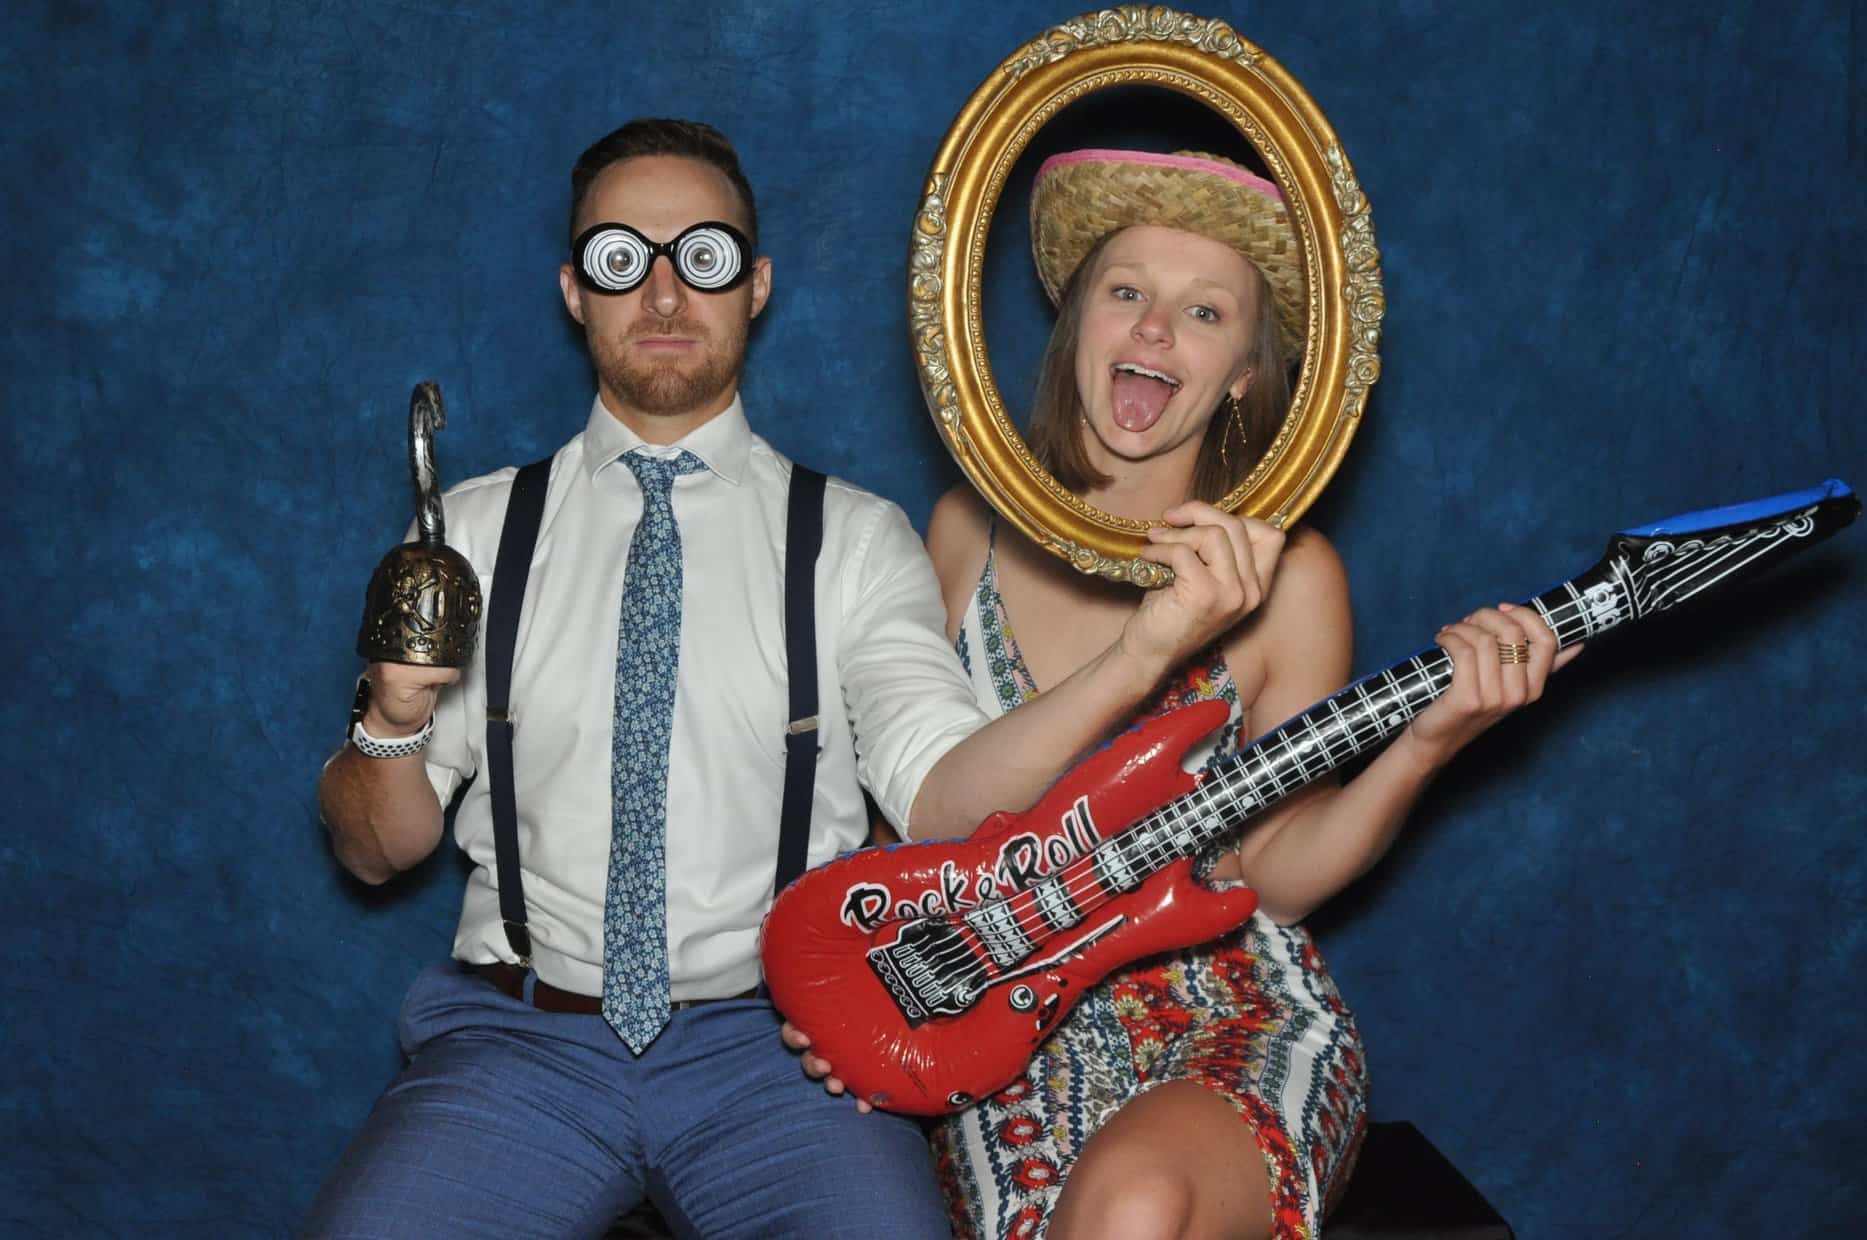 couple poses for photo booth with frame and guitar props